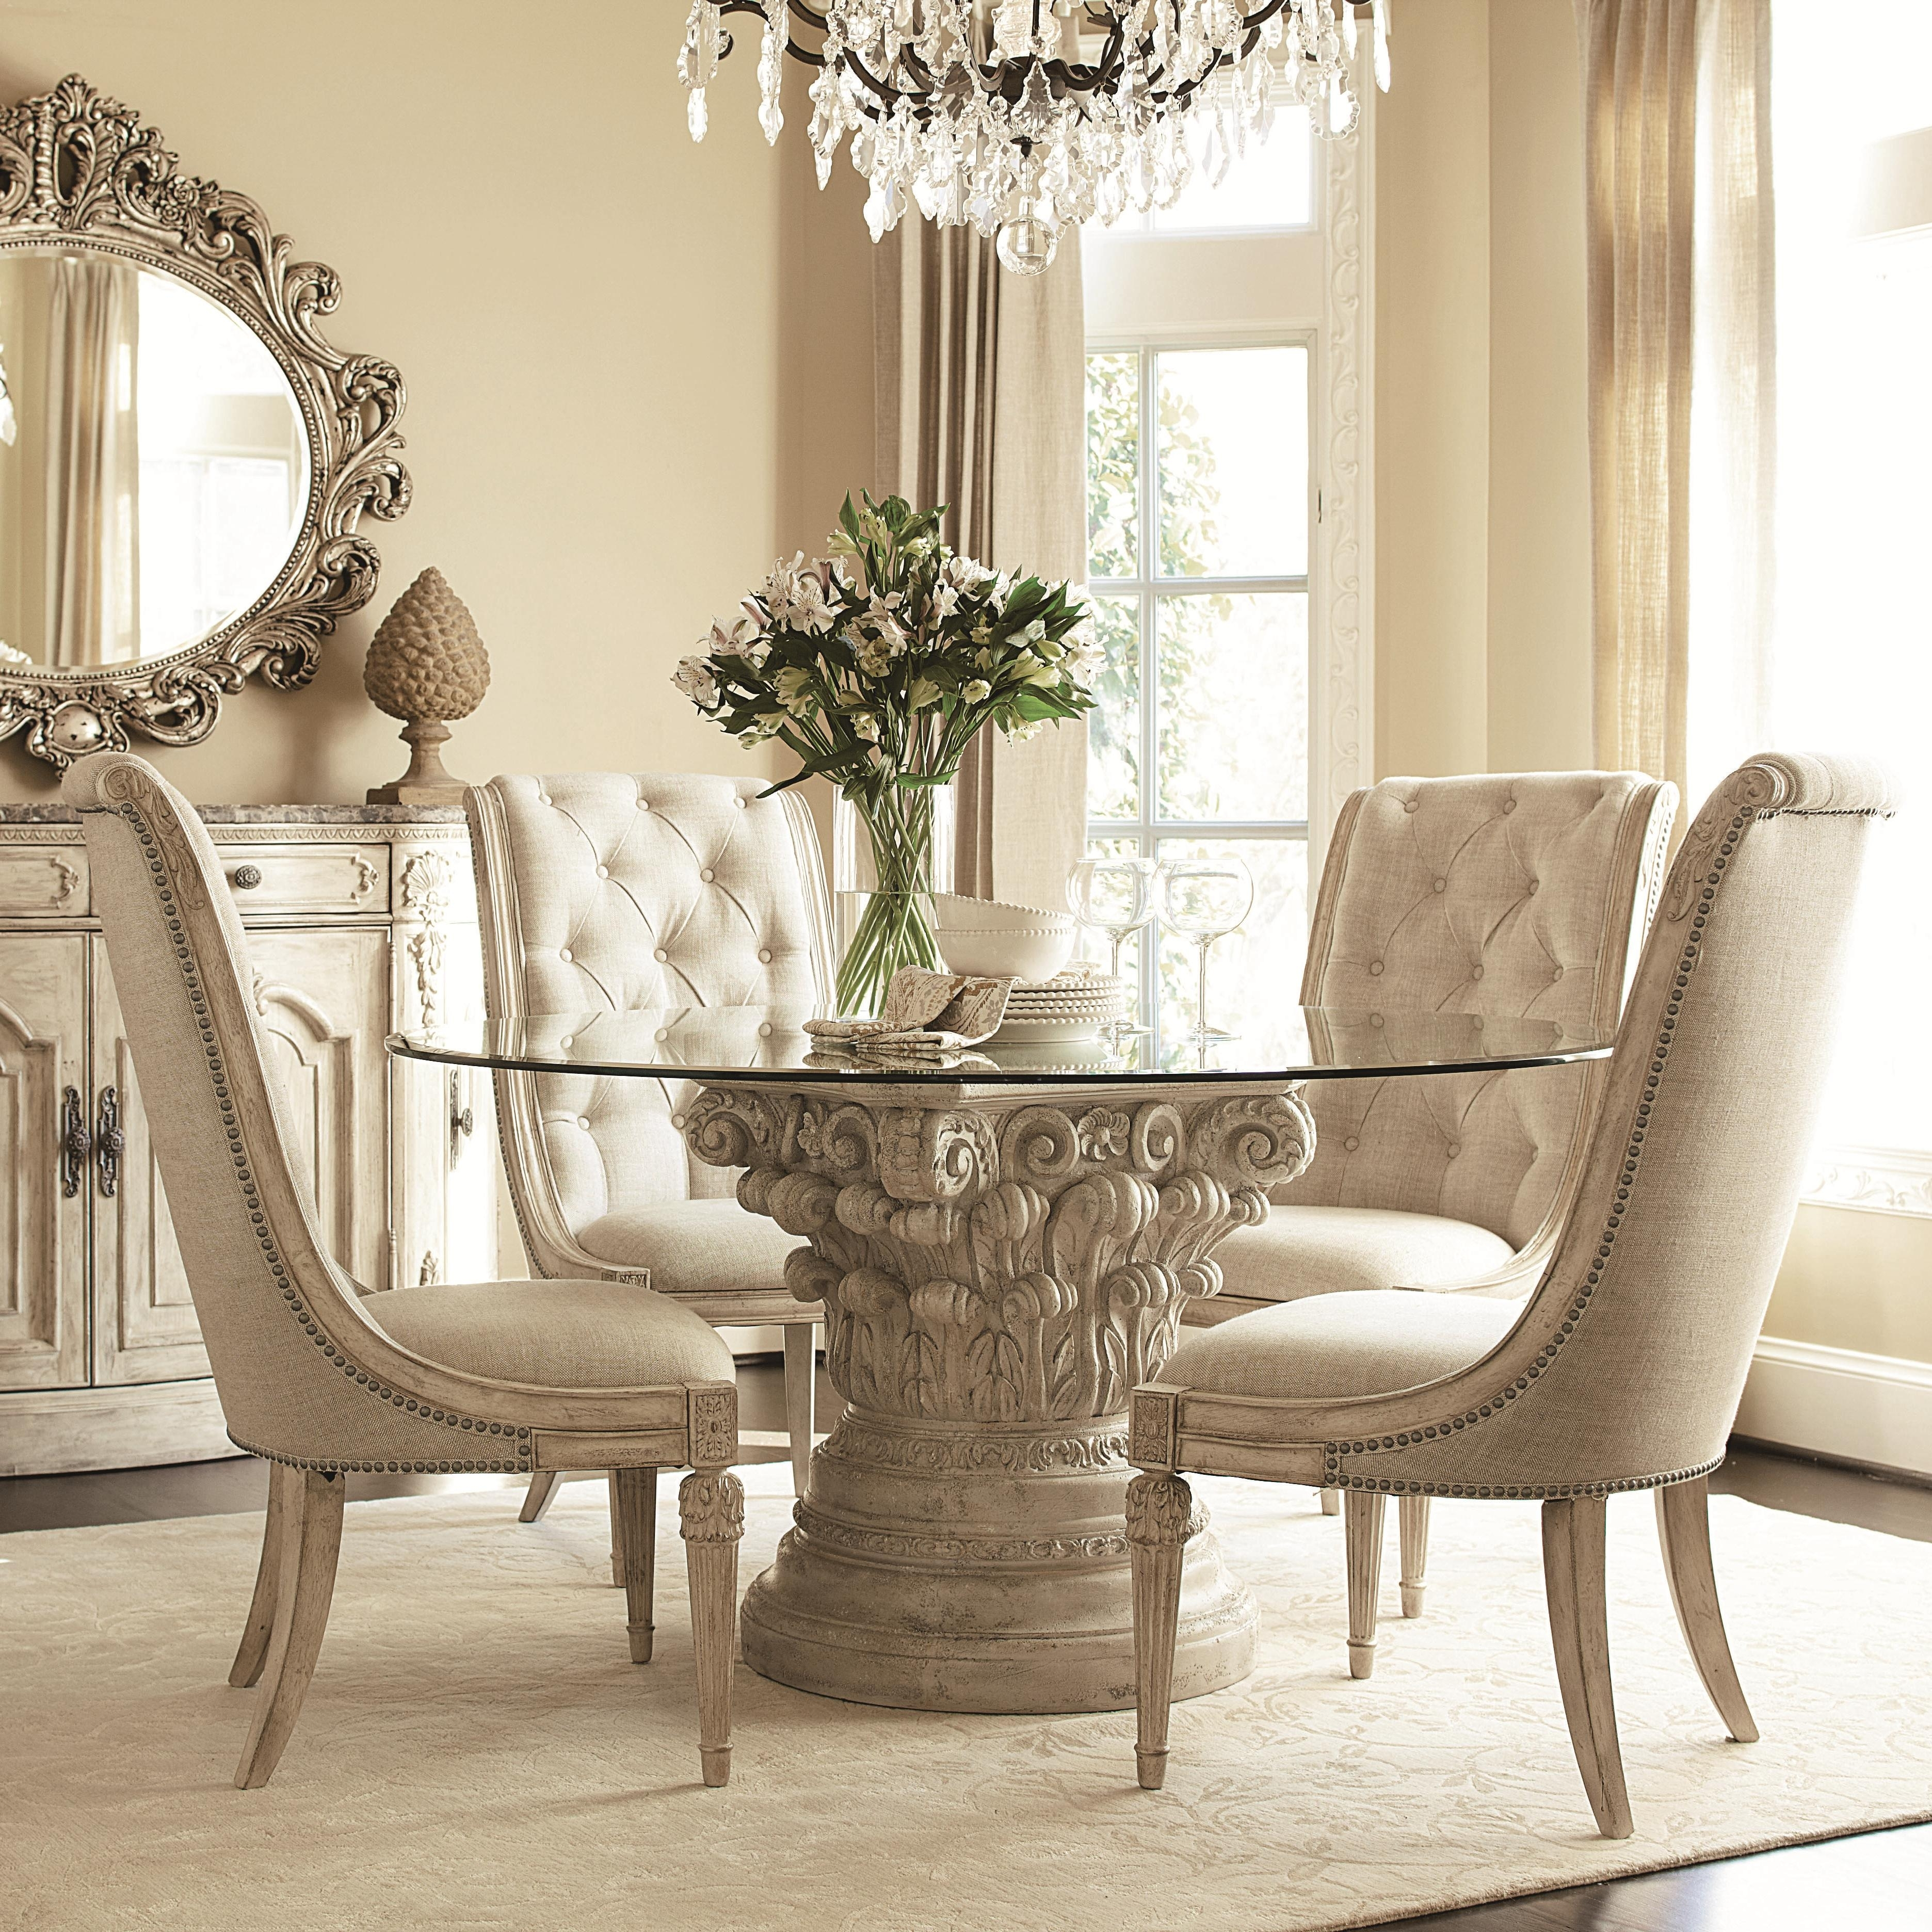 American Drew Jessica Mcclintock Home – The Boutique Collection 5 Regarding 2018 Jaxon 5 Piece Round Dining Sets With Upholstered Chairs (View 3 of 20)